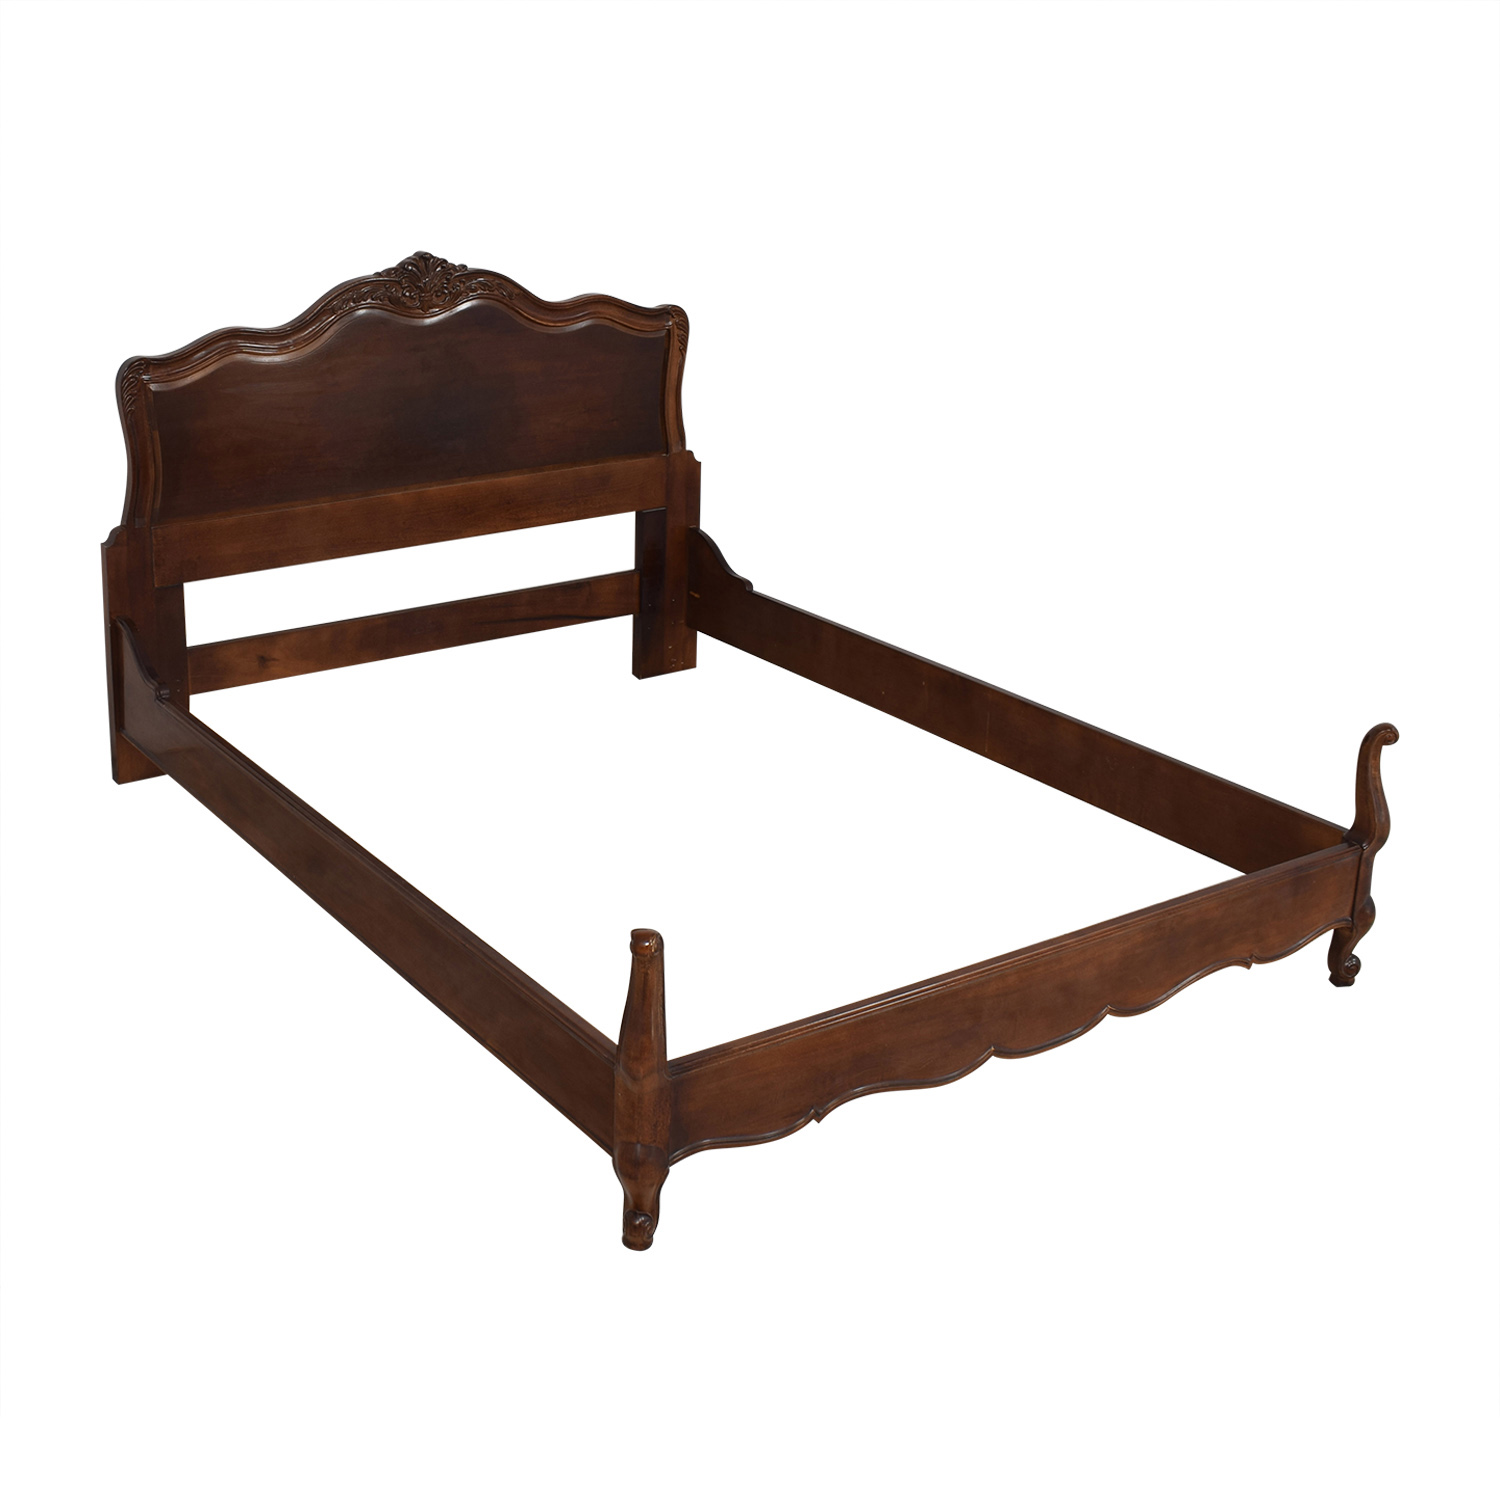 Henredon Furniture Henredon Furniture French Provincial Queen Bed discount